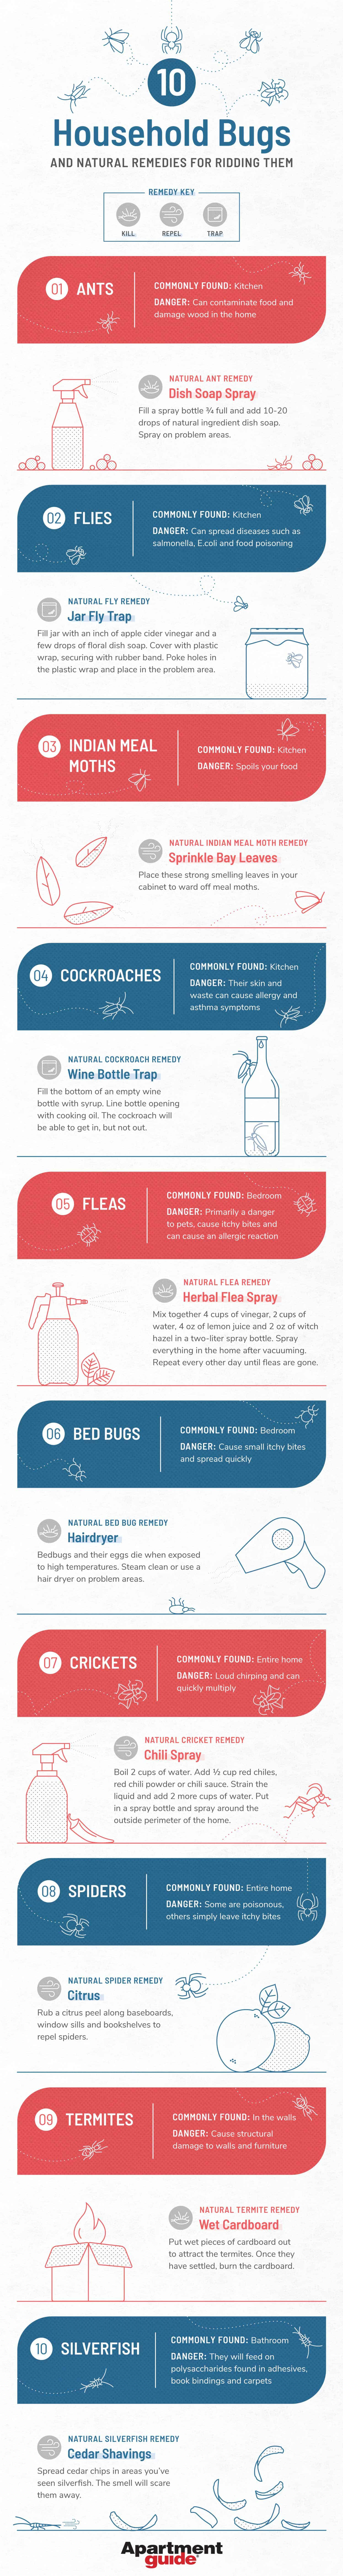 household bugs remedies